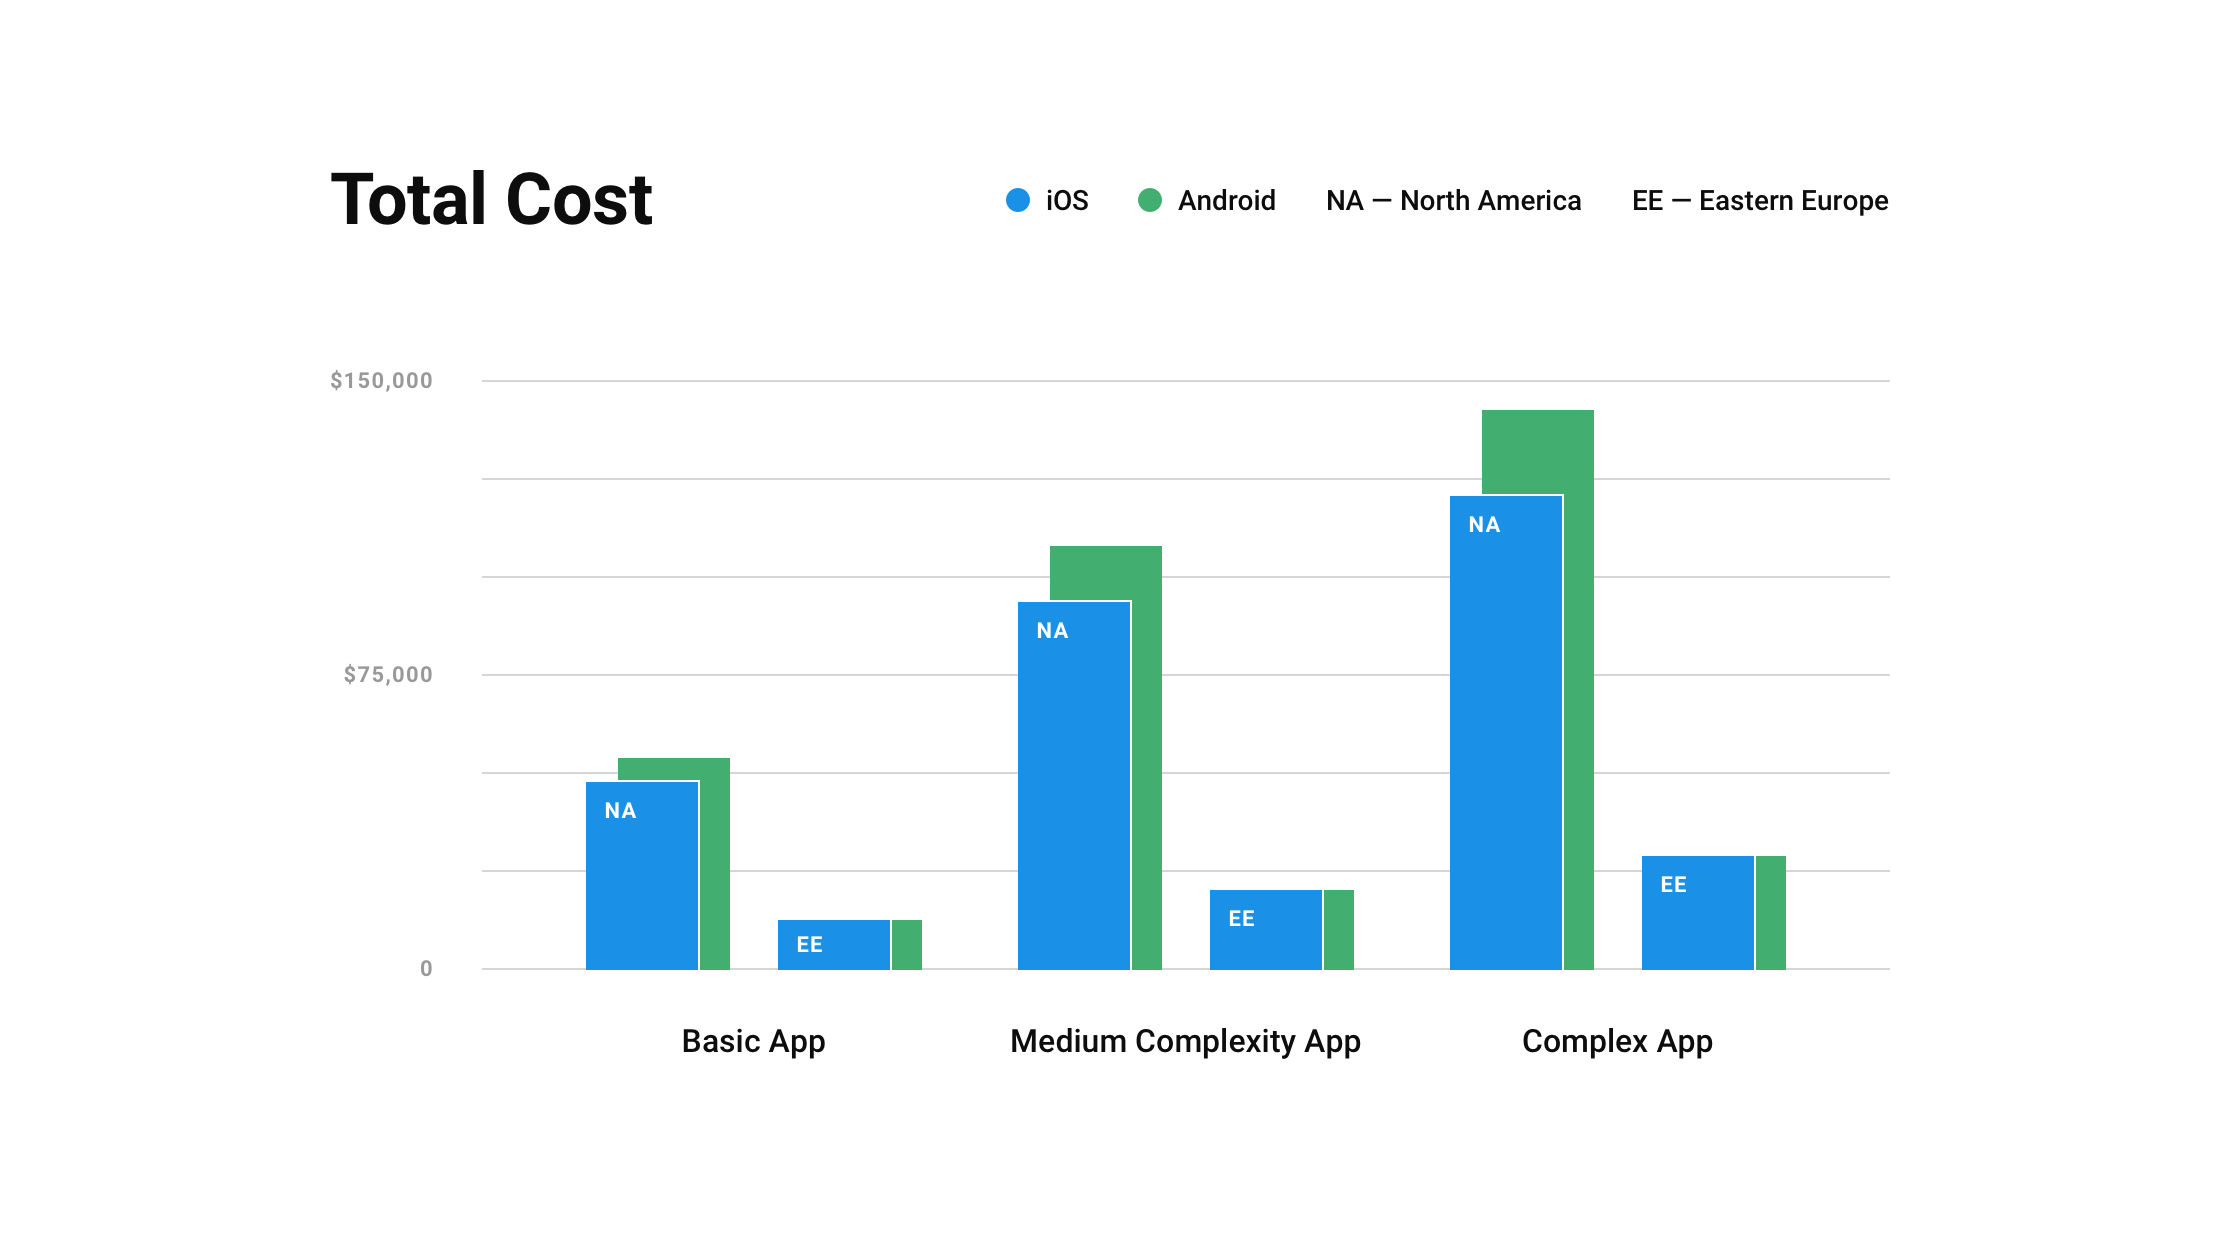 A total cost diagram of different complexity apps for different platforms